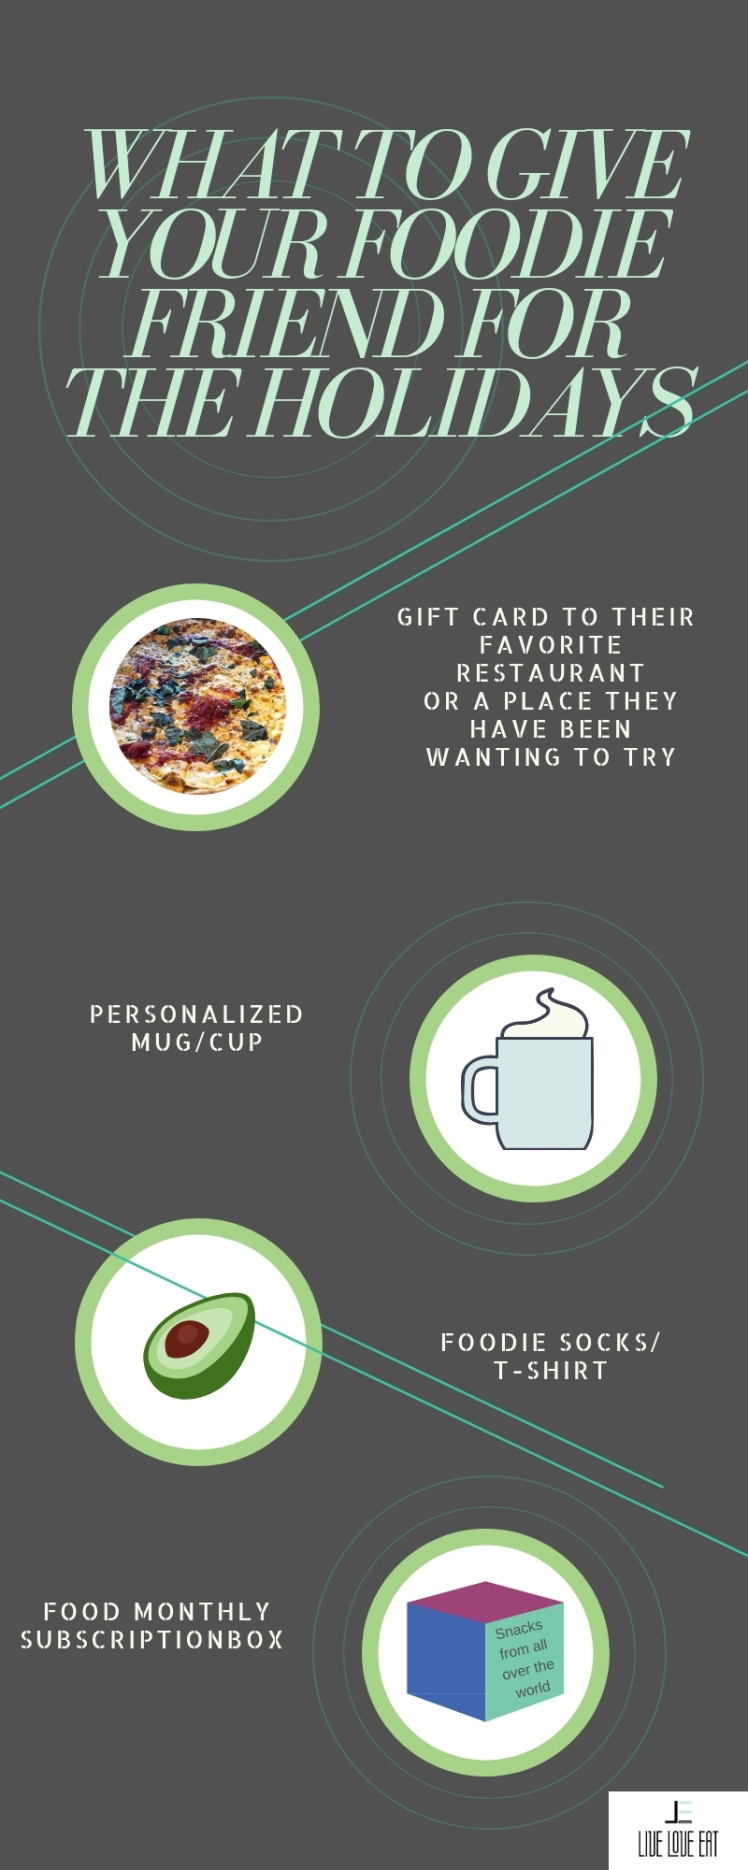 What to give your foodie friend for the holidays.jpg